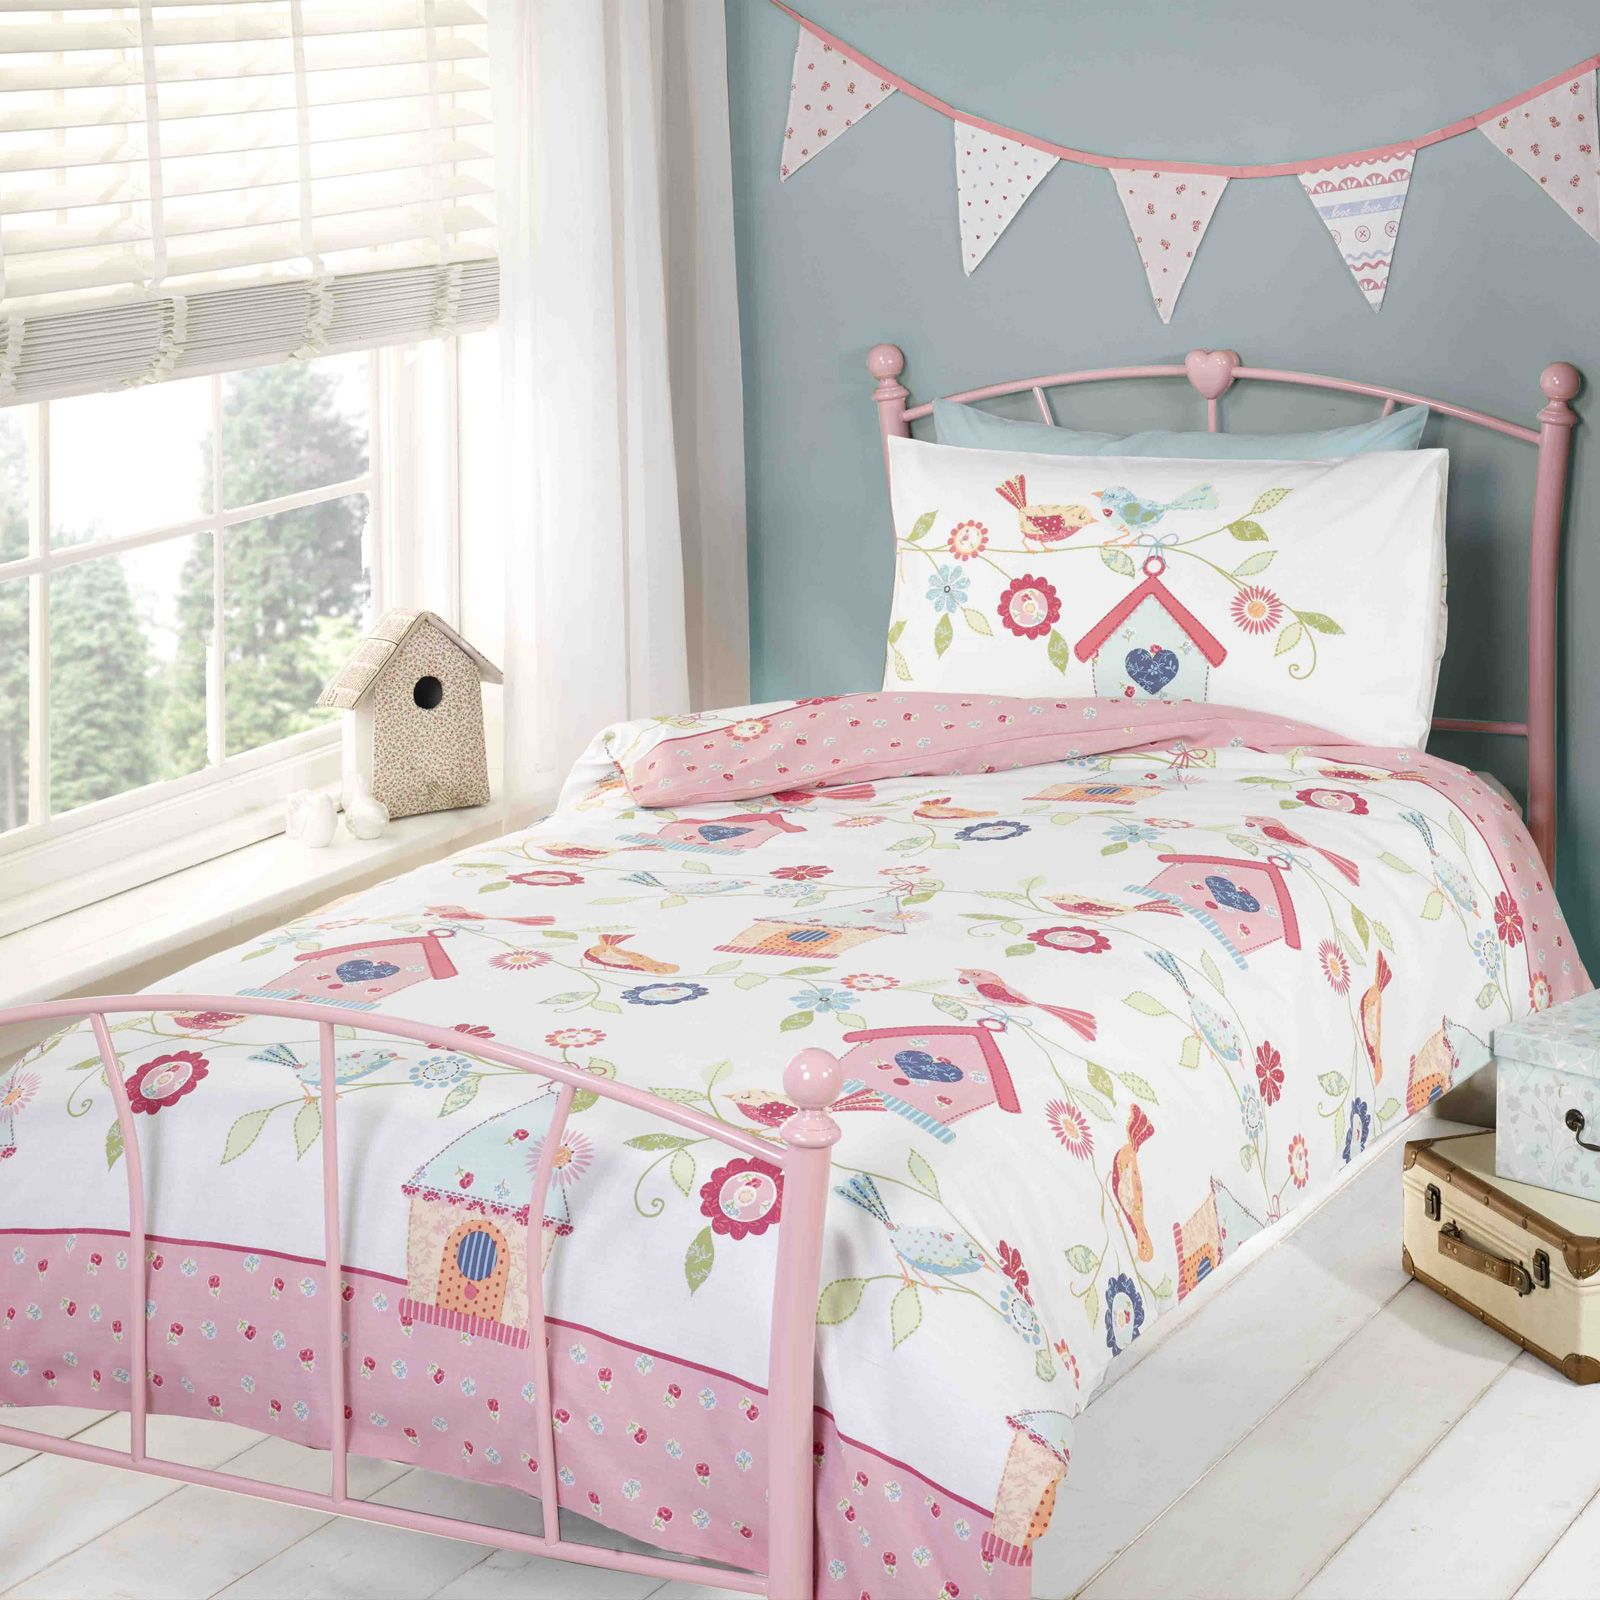 Shop for Single & Double Duvet Covers of Various Material, Designs & Patterns A duvet cover is a removable cover that goes on top of a duvet. You can just take it off as this cover .